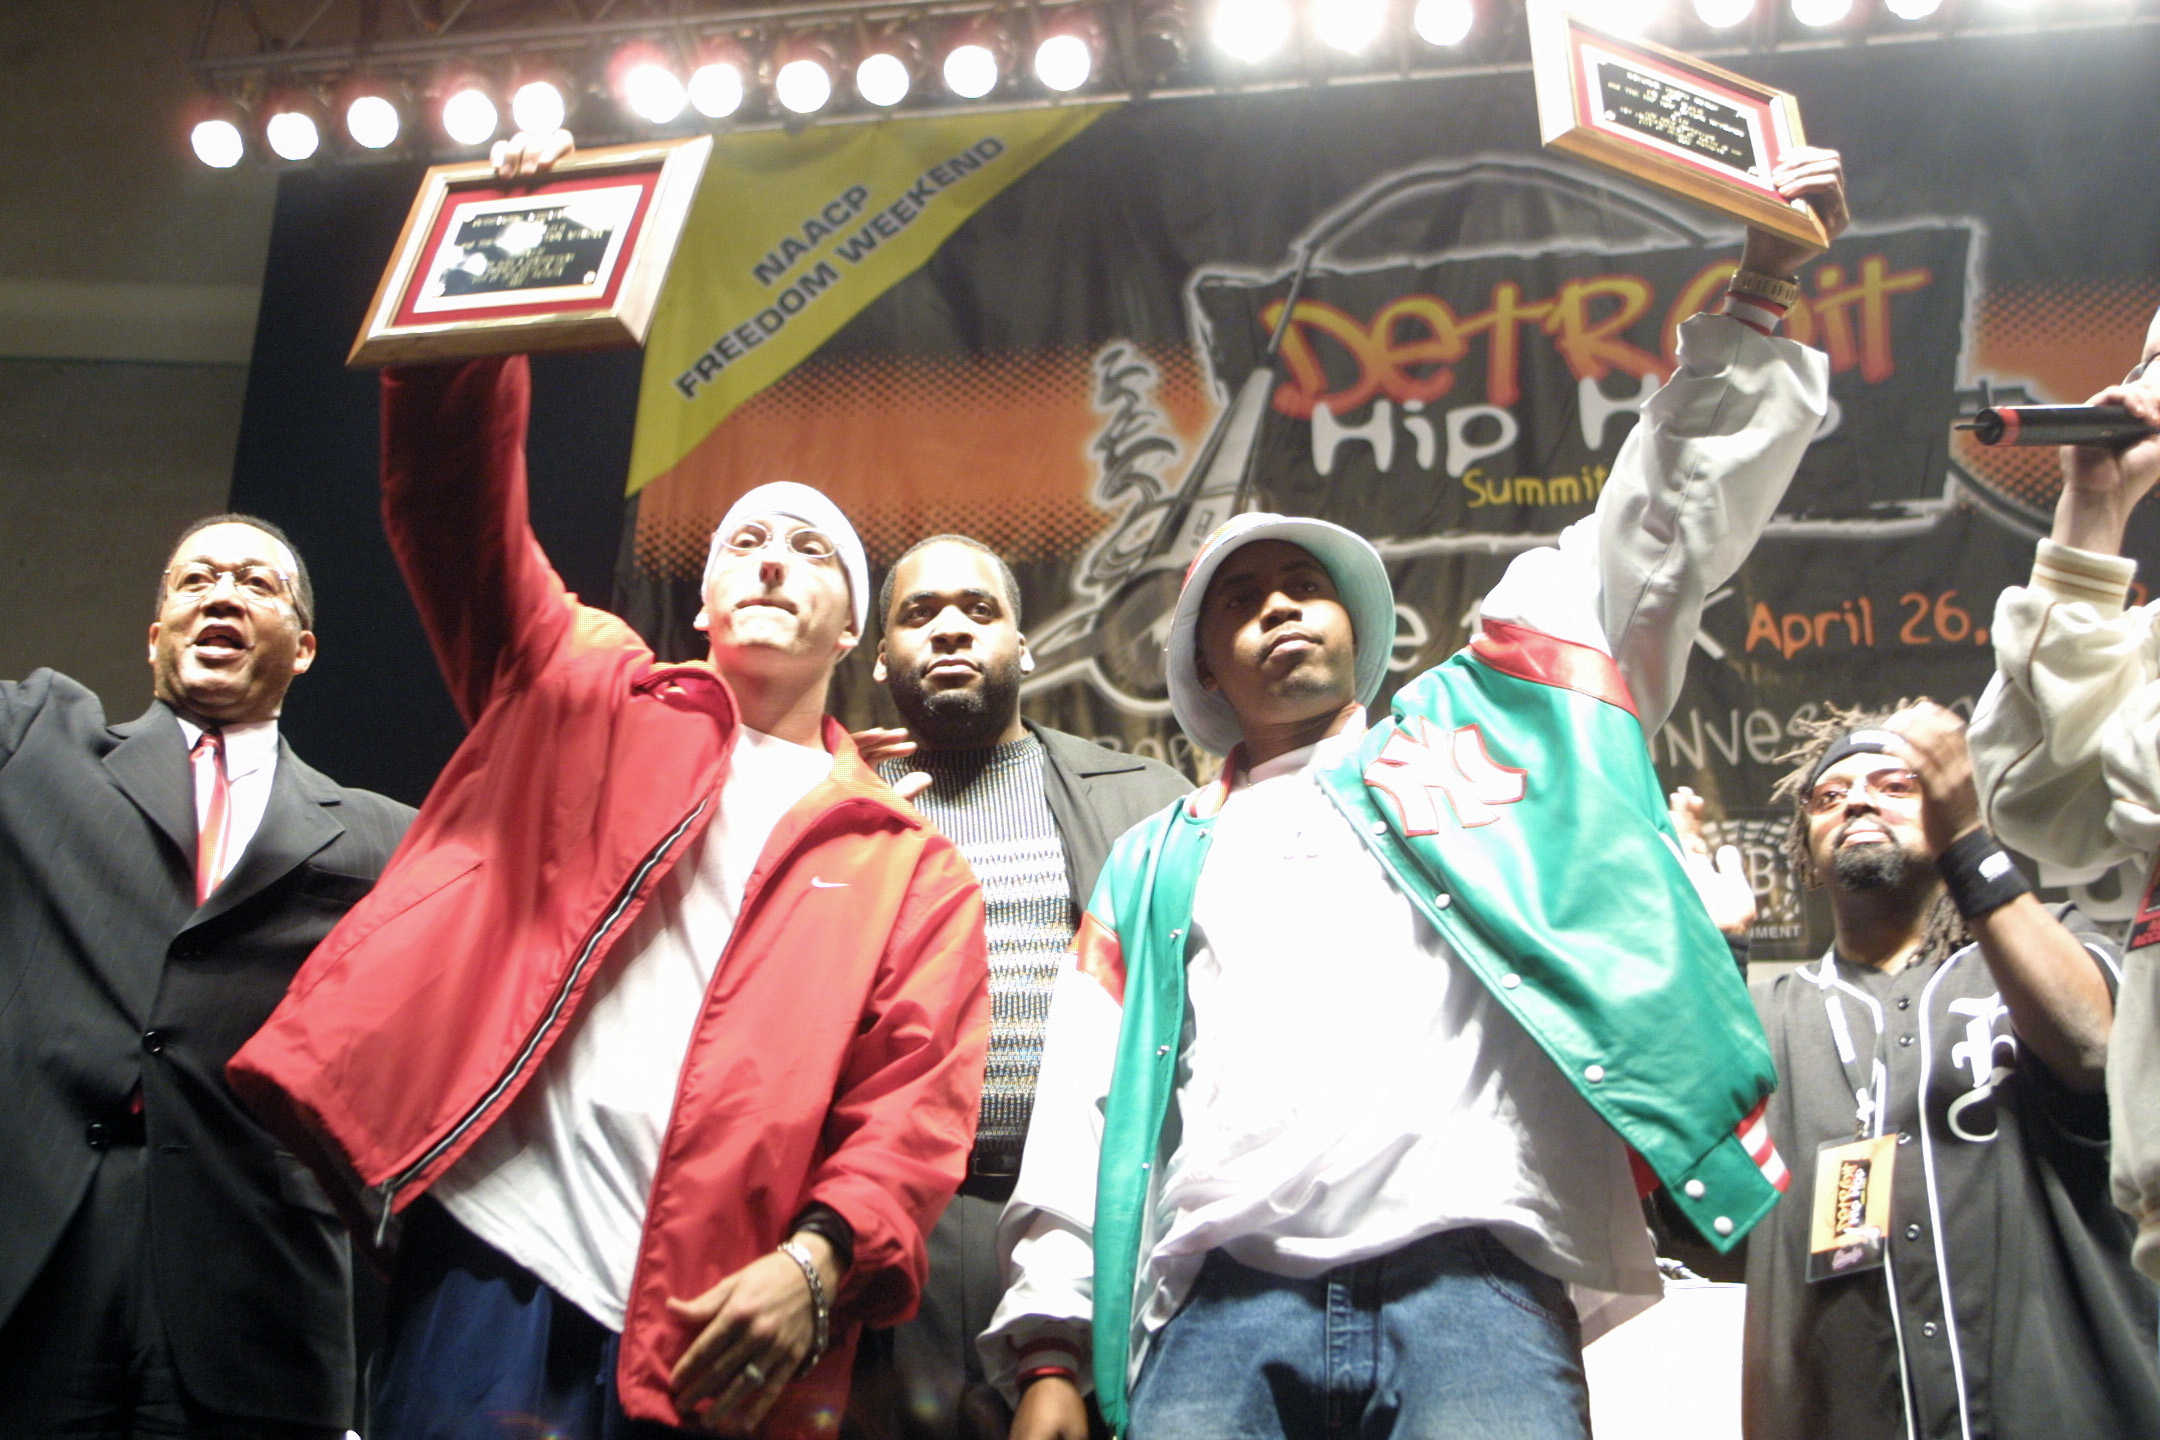 """Mayor Kwame Kilpatrick joins Eminem and Nas on stage at the 2003 Hip Hop Summit at Detroit's Cobo Arena. That weekend, Russell Simmons declared Kwame """"America's hip hop mayor,"""" a moniker that would become a source of both pride and trouble for the young mayor.  Courtesy of Tim and Tobias Smith."""